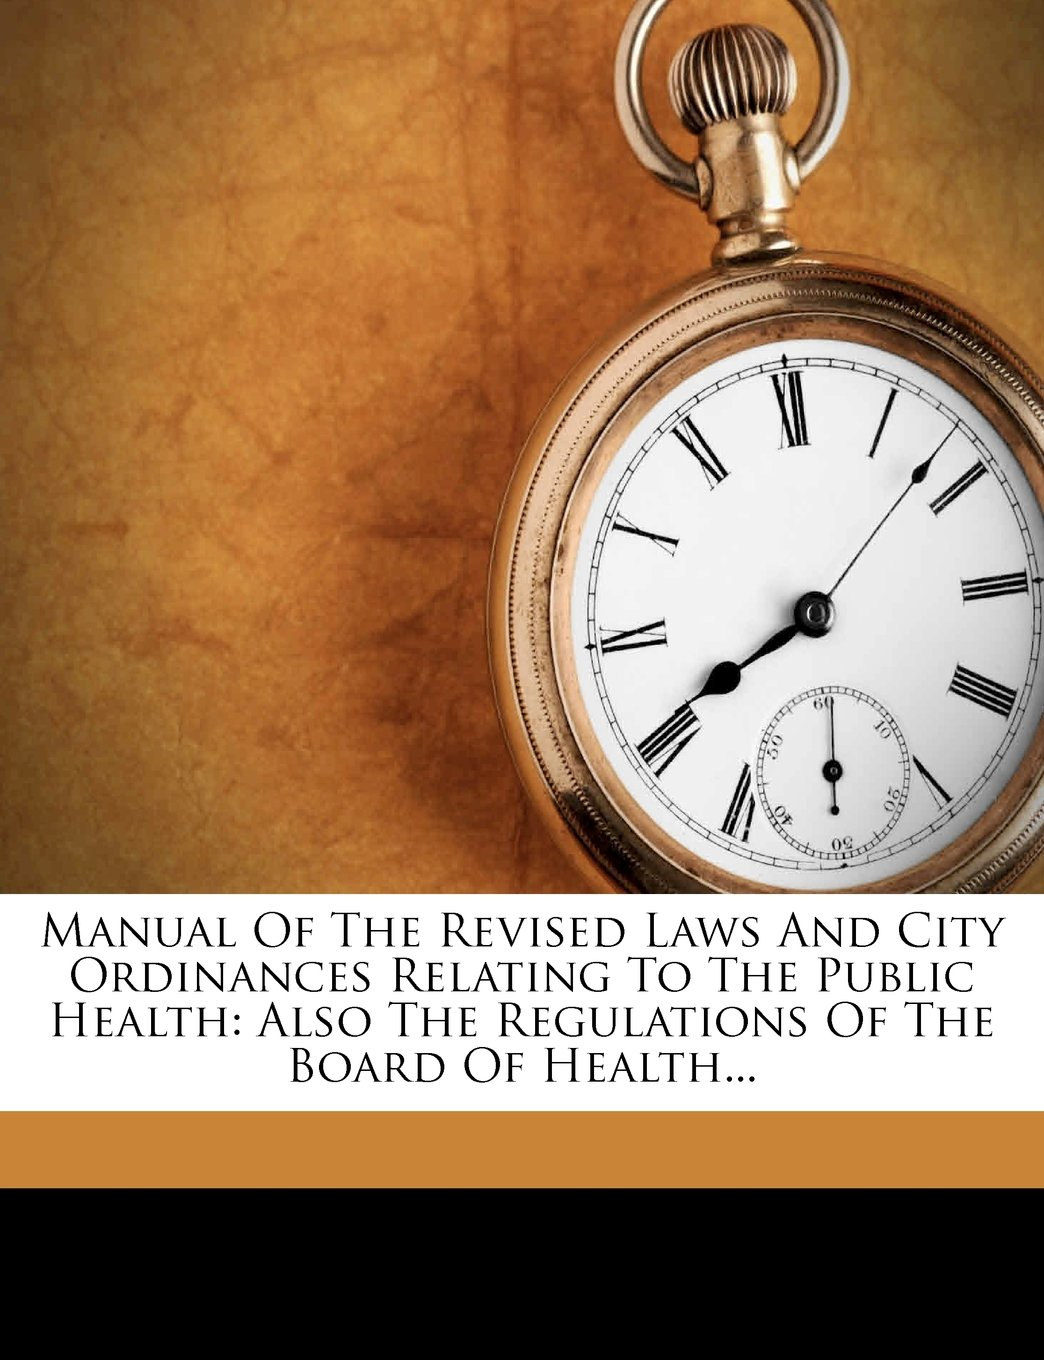 Manual of the Revised Laws and City Ordinances Relating to the Public Health: Also the Regulations of the Board of Health... PDF